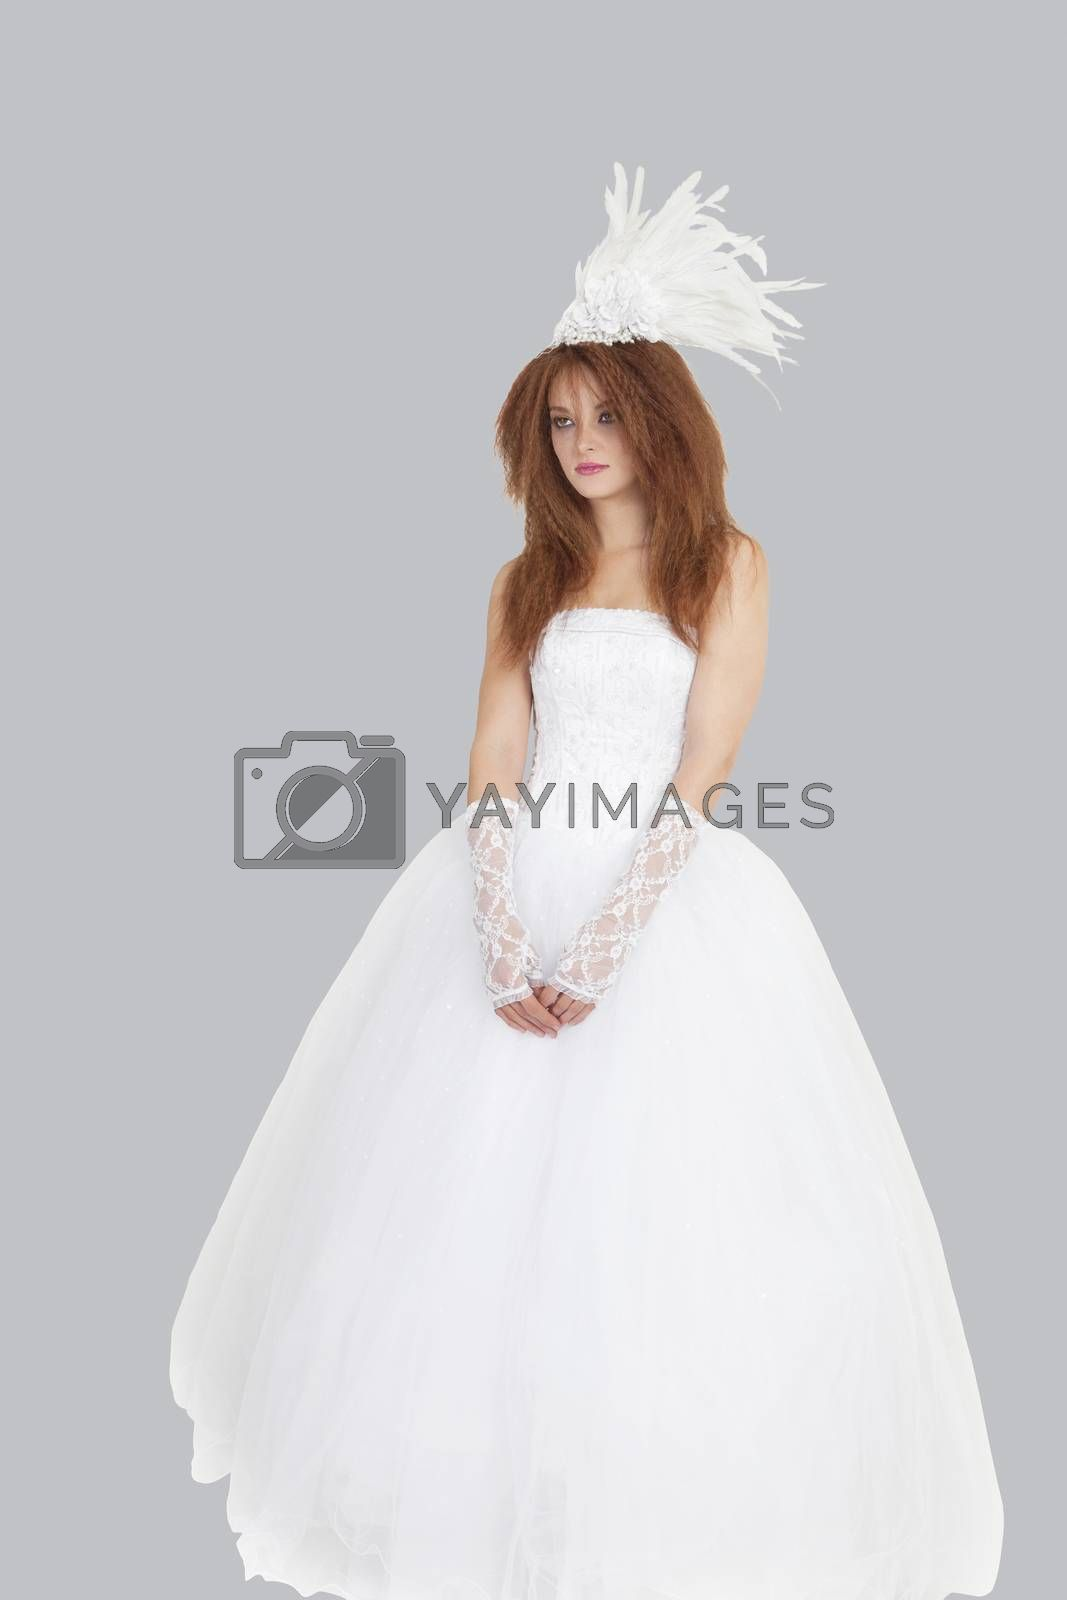 Young brunette bride standing in wedding gown over light gray background